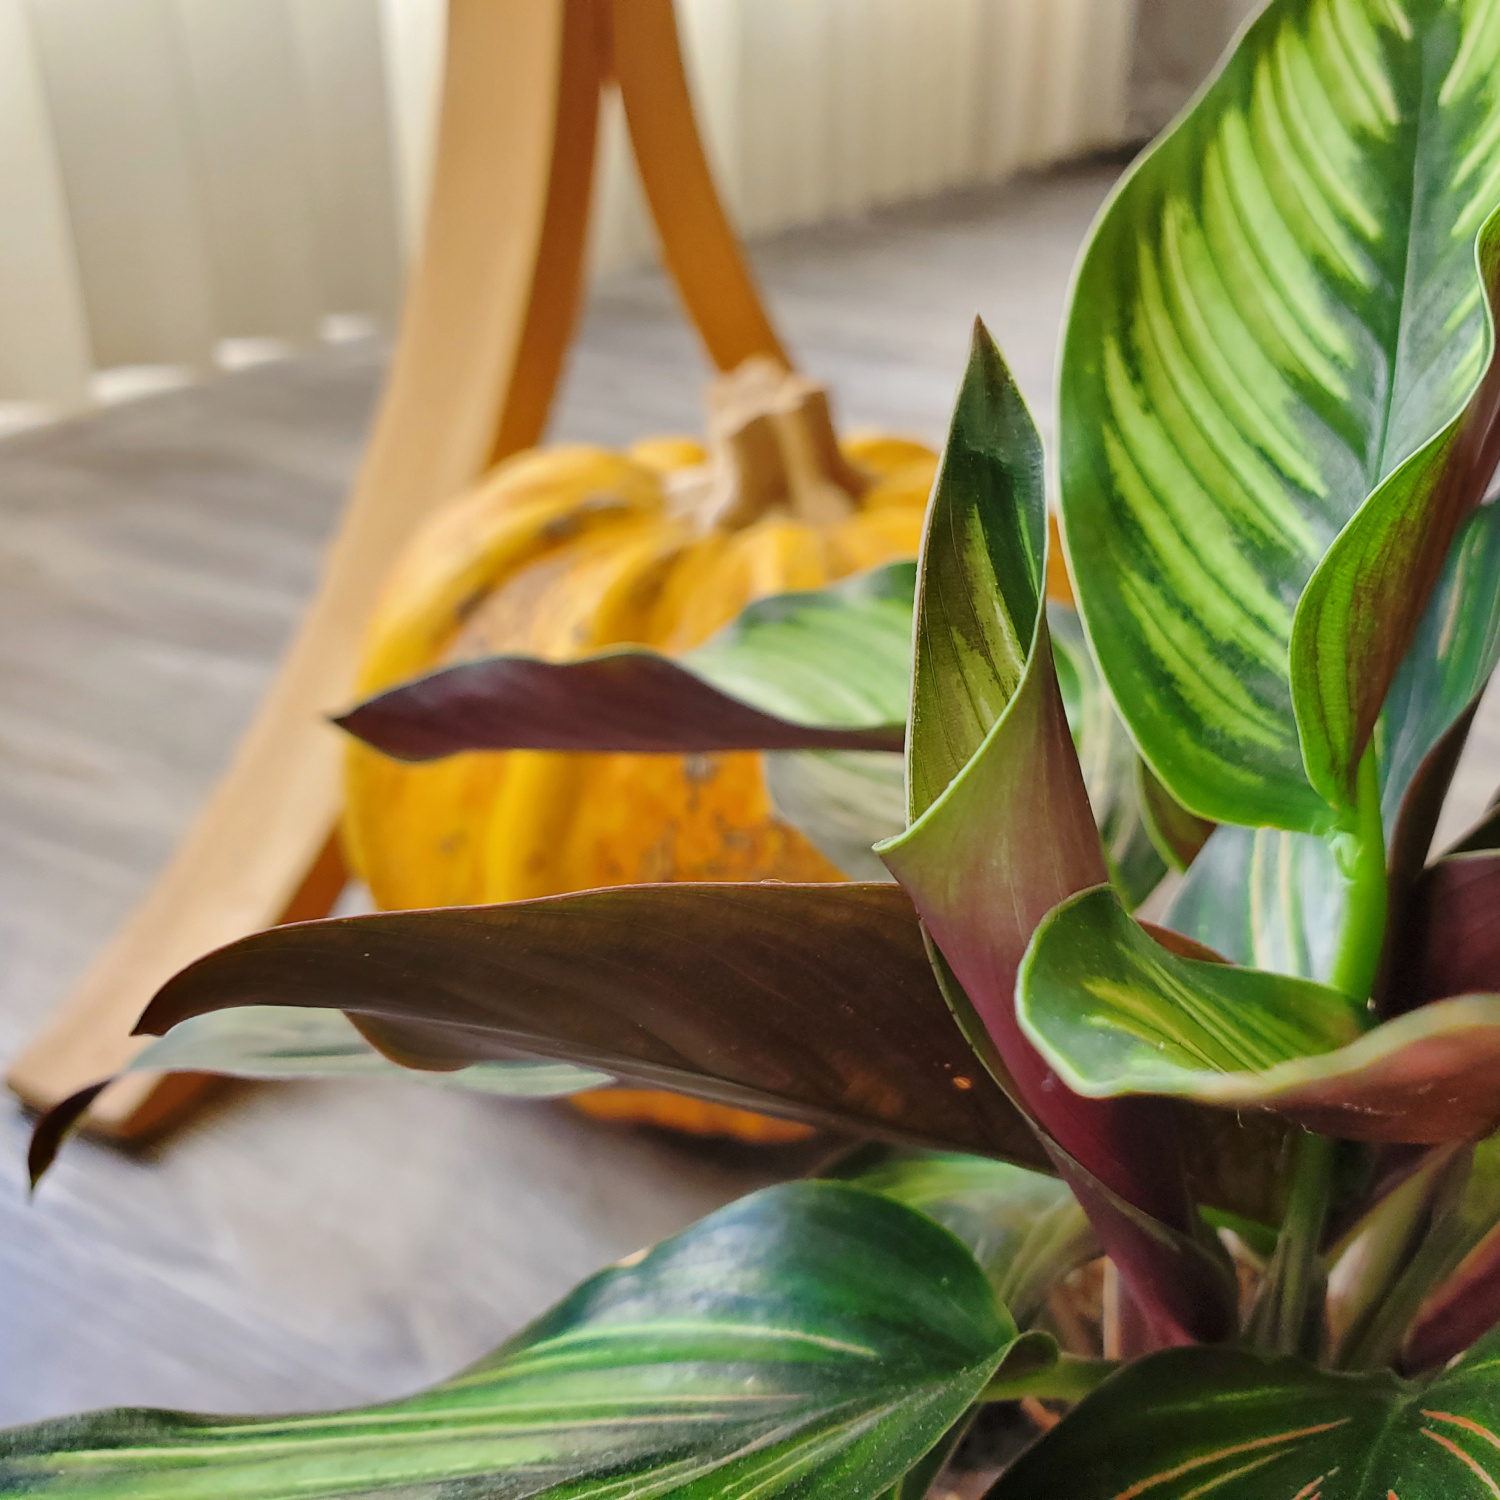 The calathea is sending out a new ear to uncurl into a big leaf